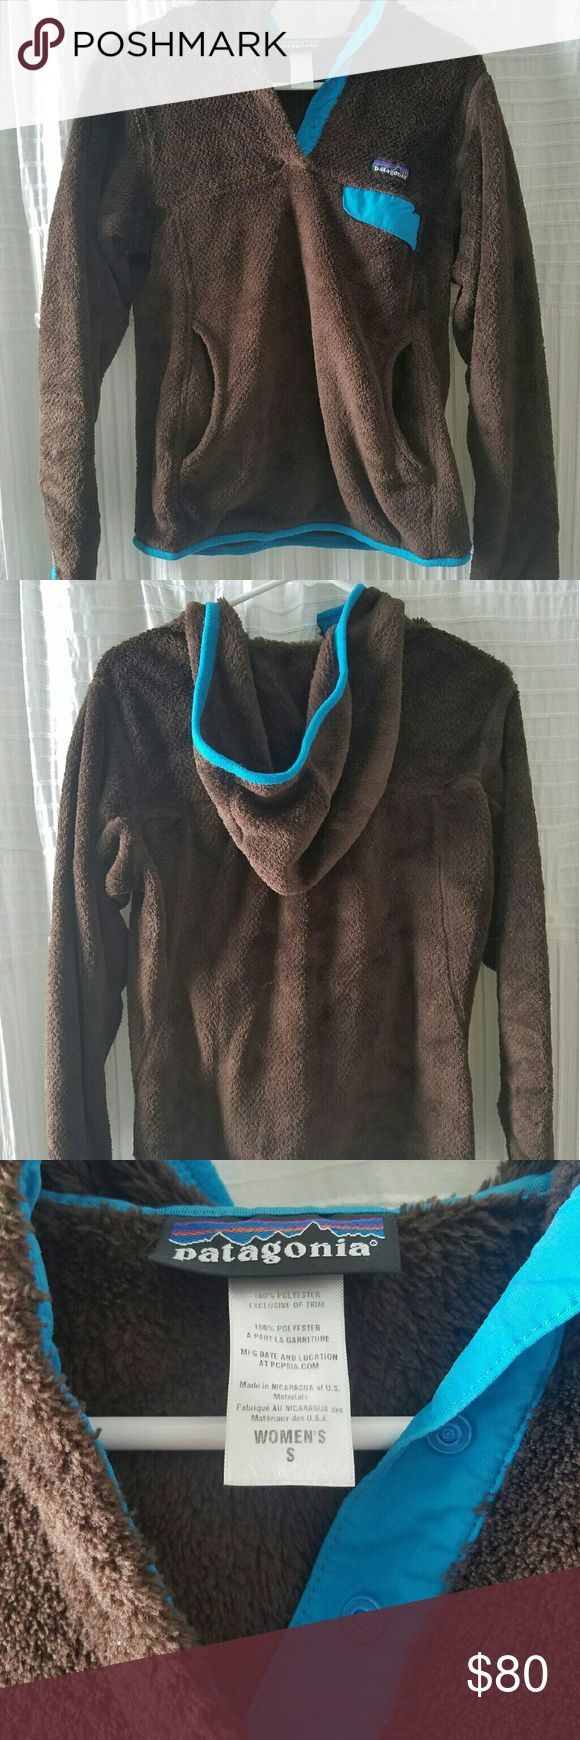 Patagonia Re-Tool Fleece Hooded Jacket OBO Dark Walnut with bright blue details. Hardly worn. Like new. Patagonia Jackets & Coats